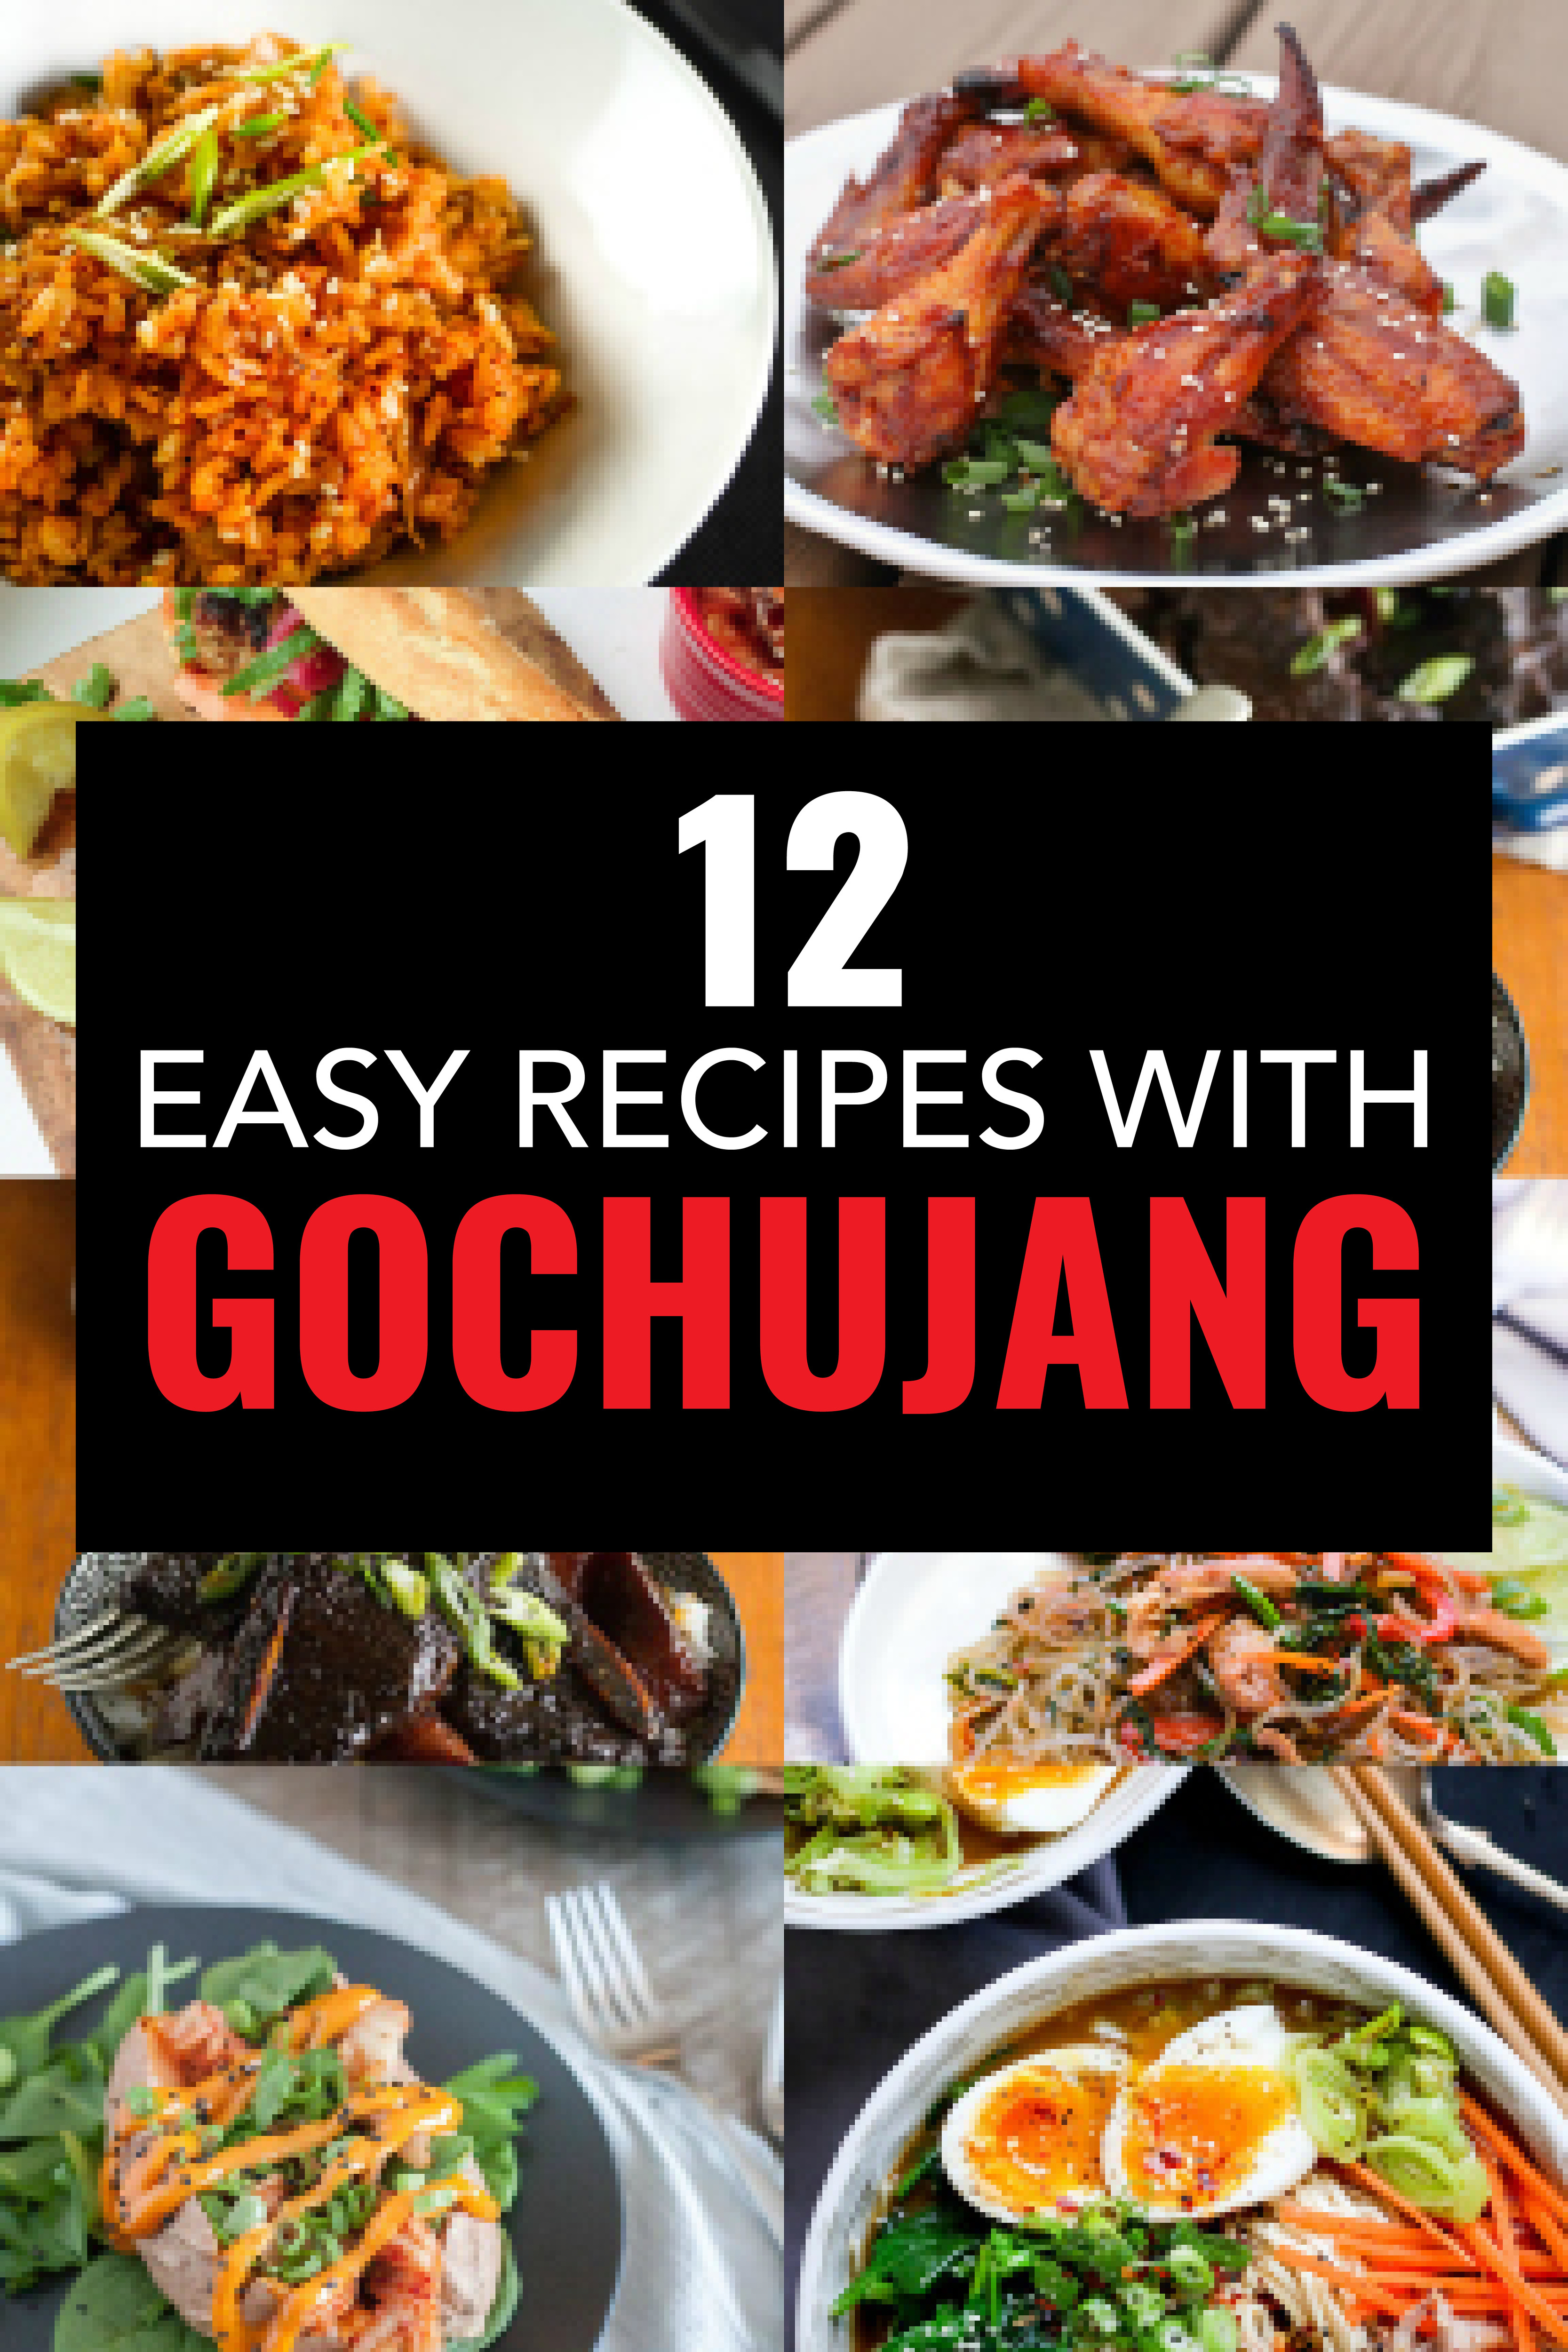 Here are 12 gochujang recipes anyone can master.This Korean hot sauce is the new sriracha and so tasty.